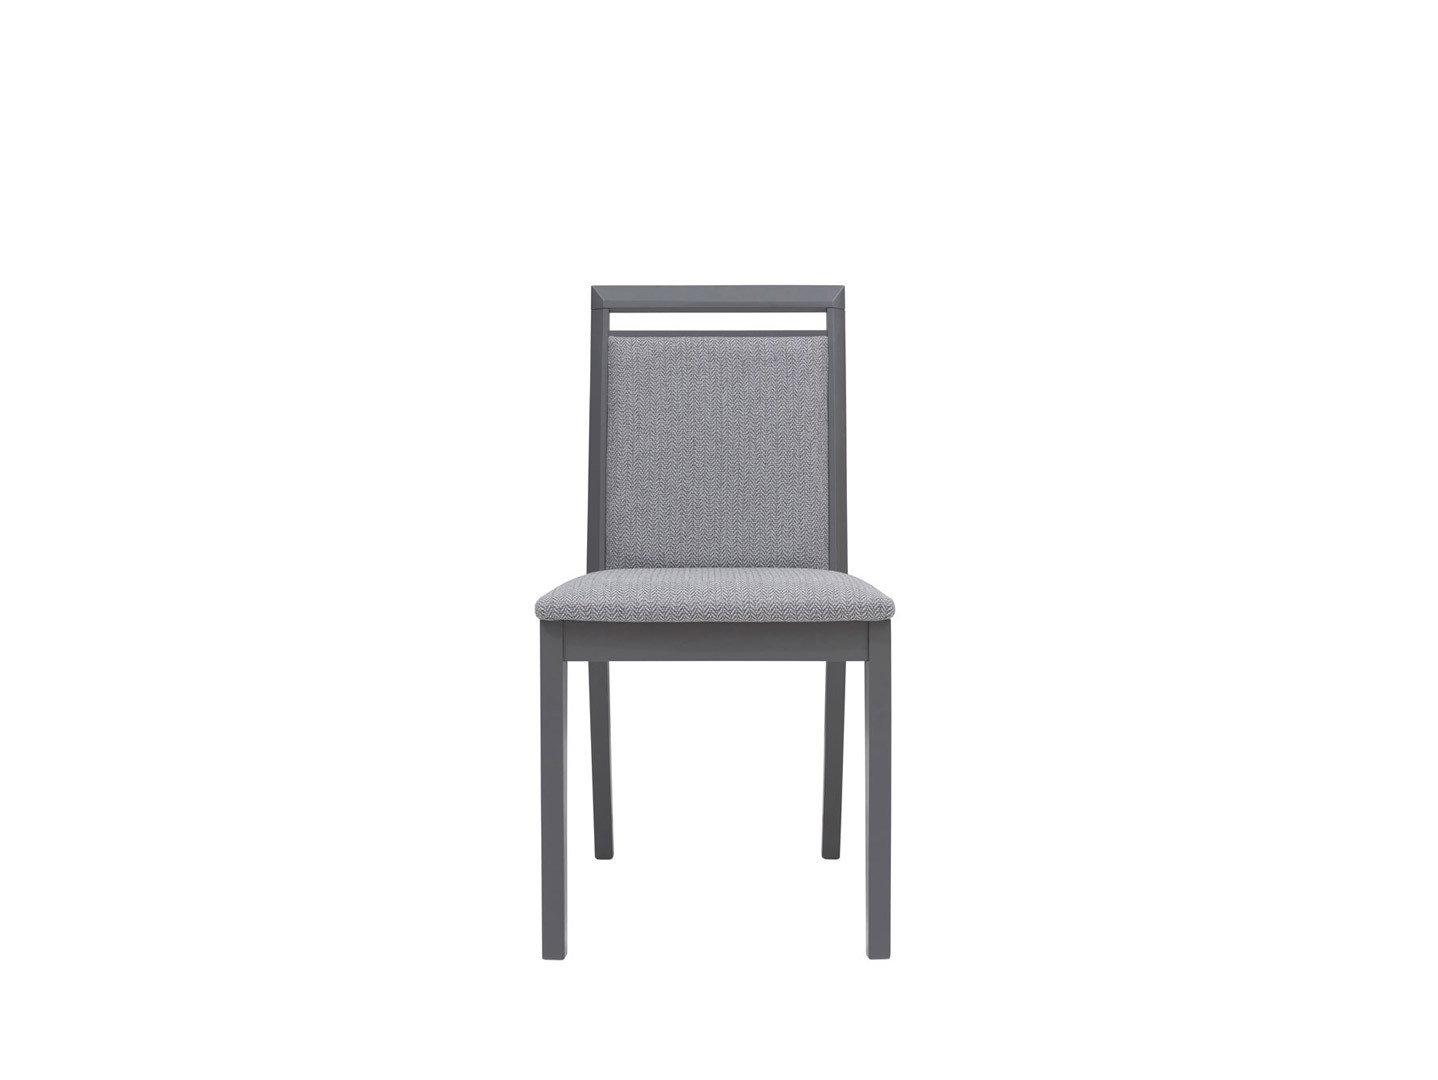 data/Optica/OPTICA CHAIR_a.jpg